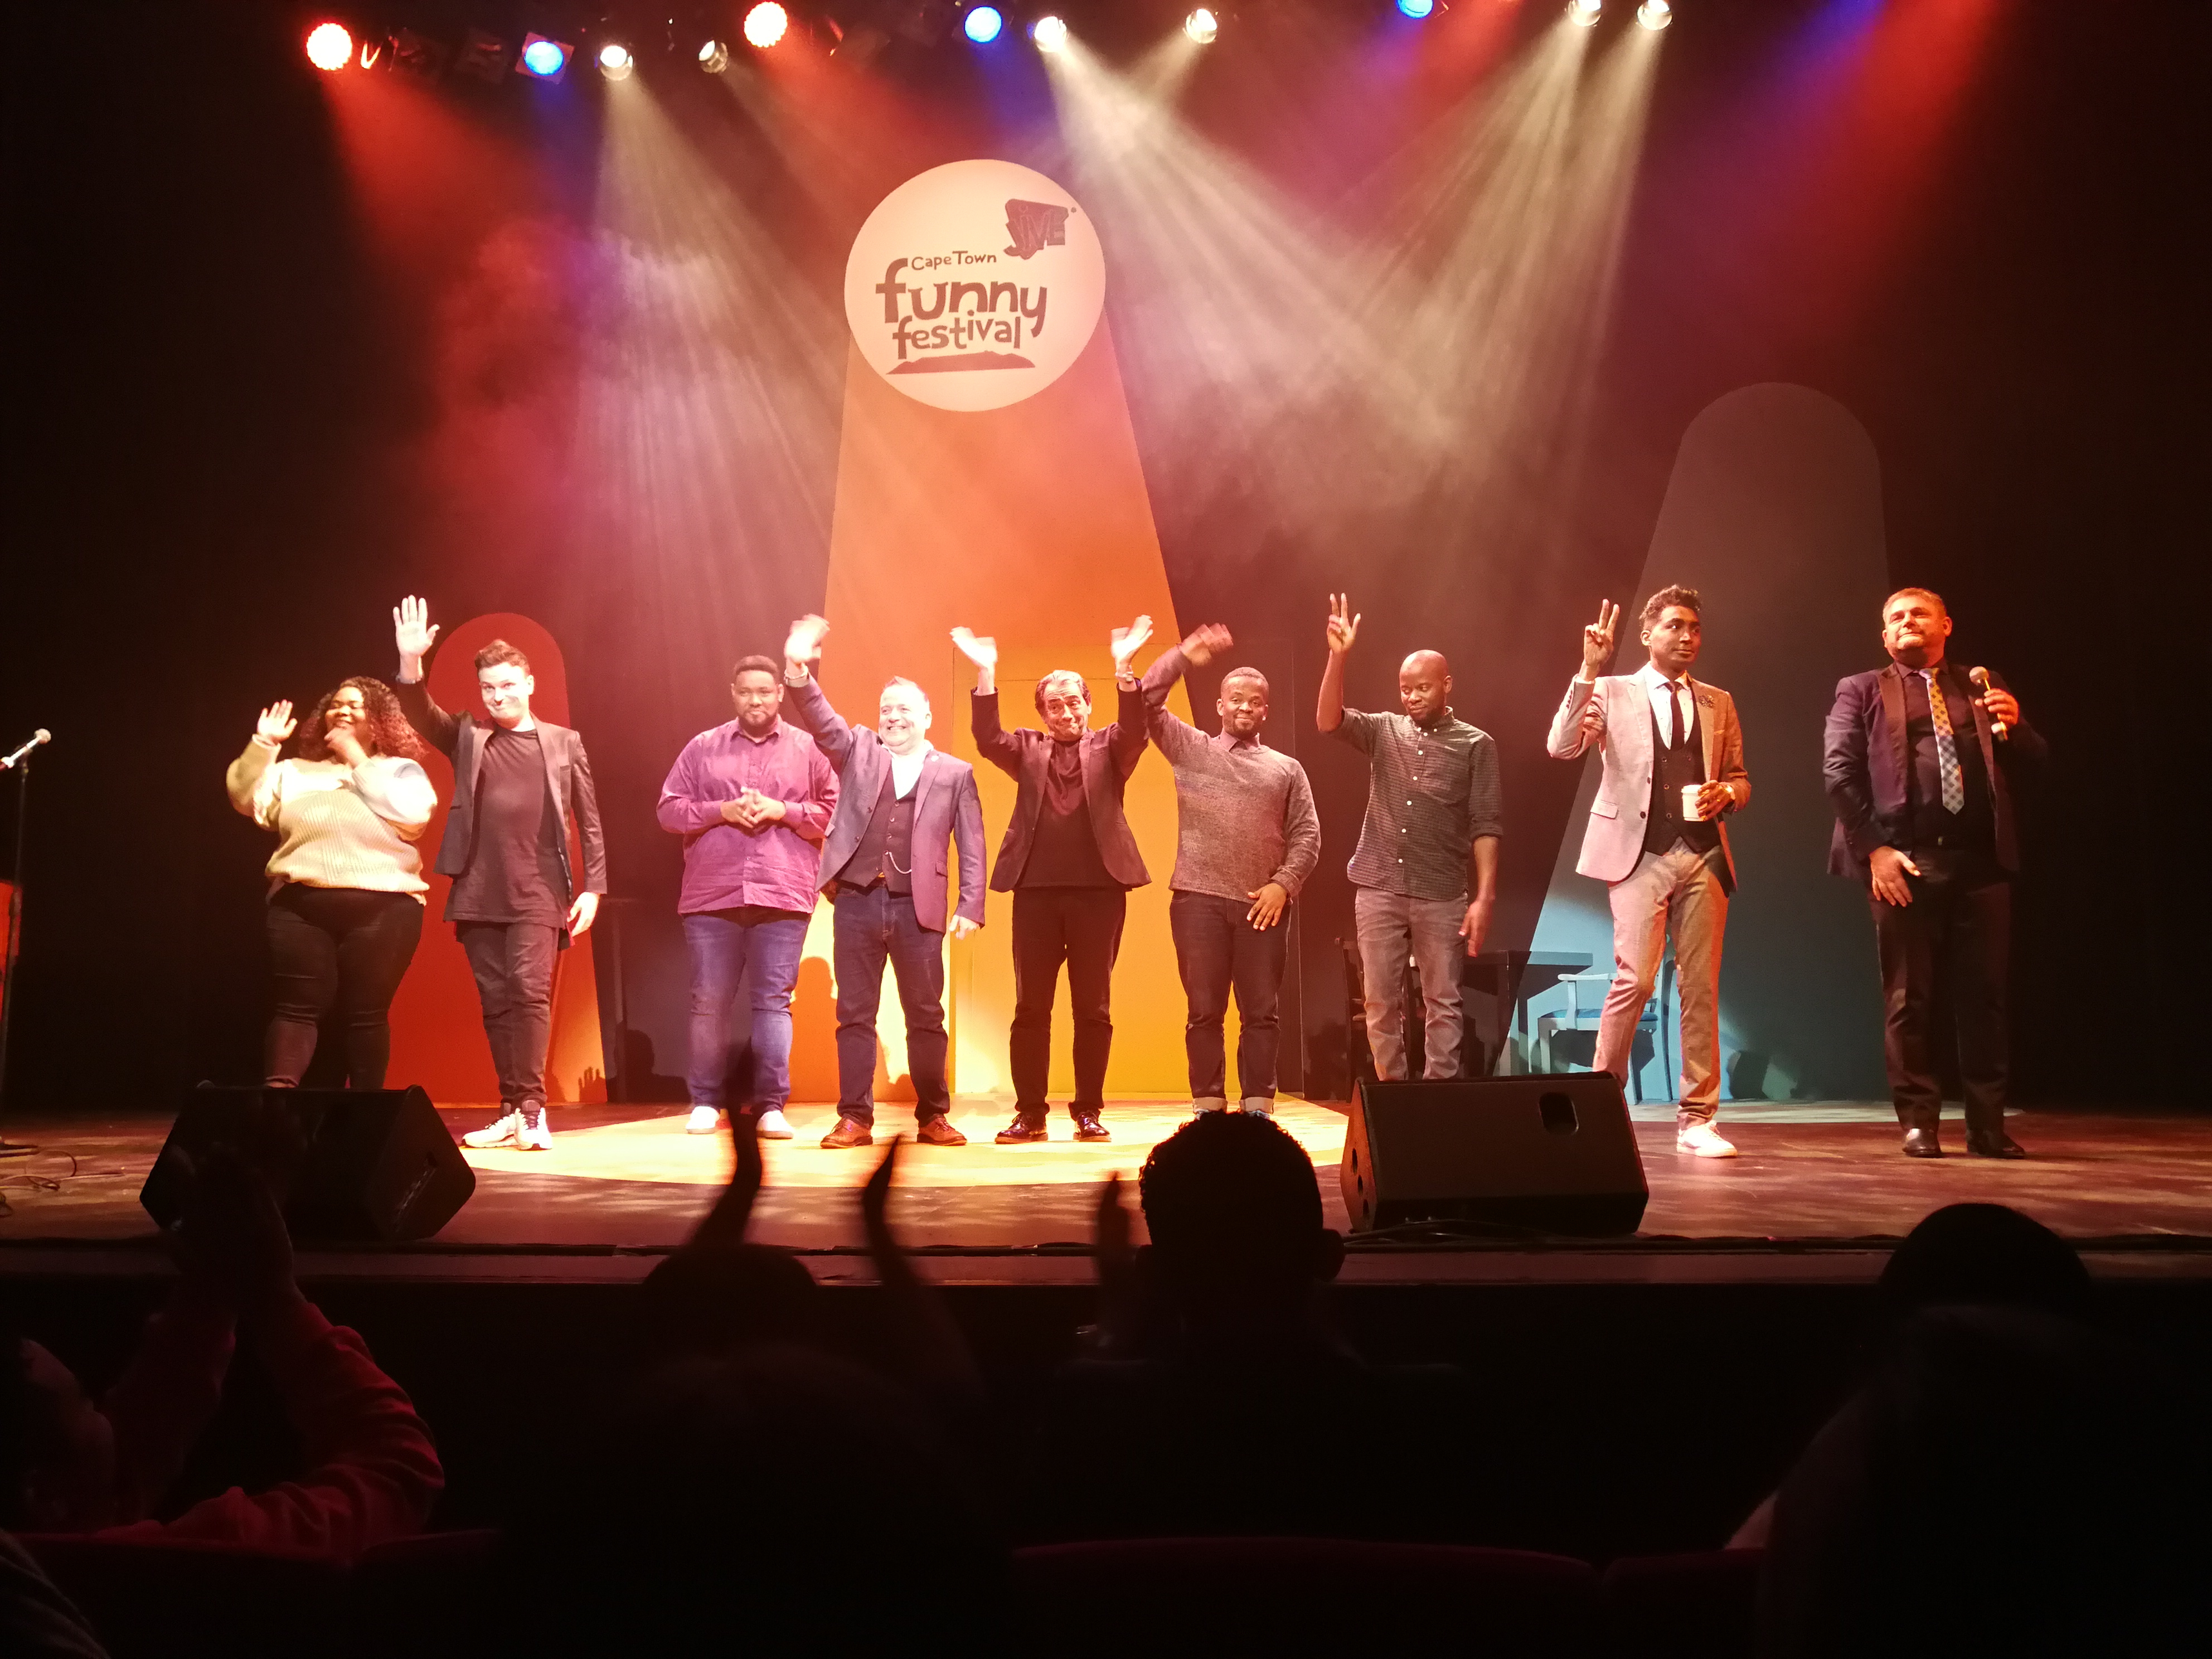 Last Chance To See The Jive Cape Town Funny Festival